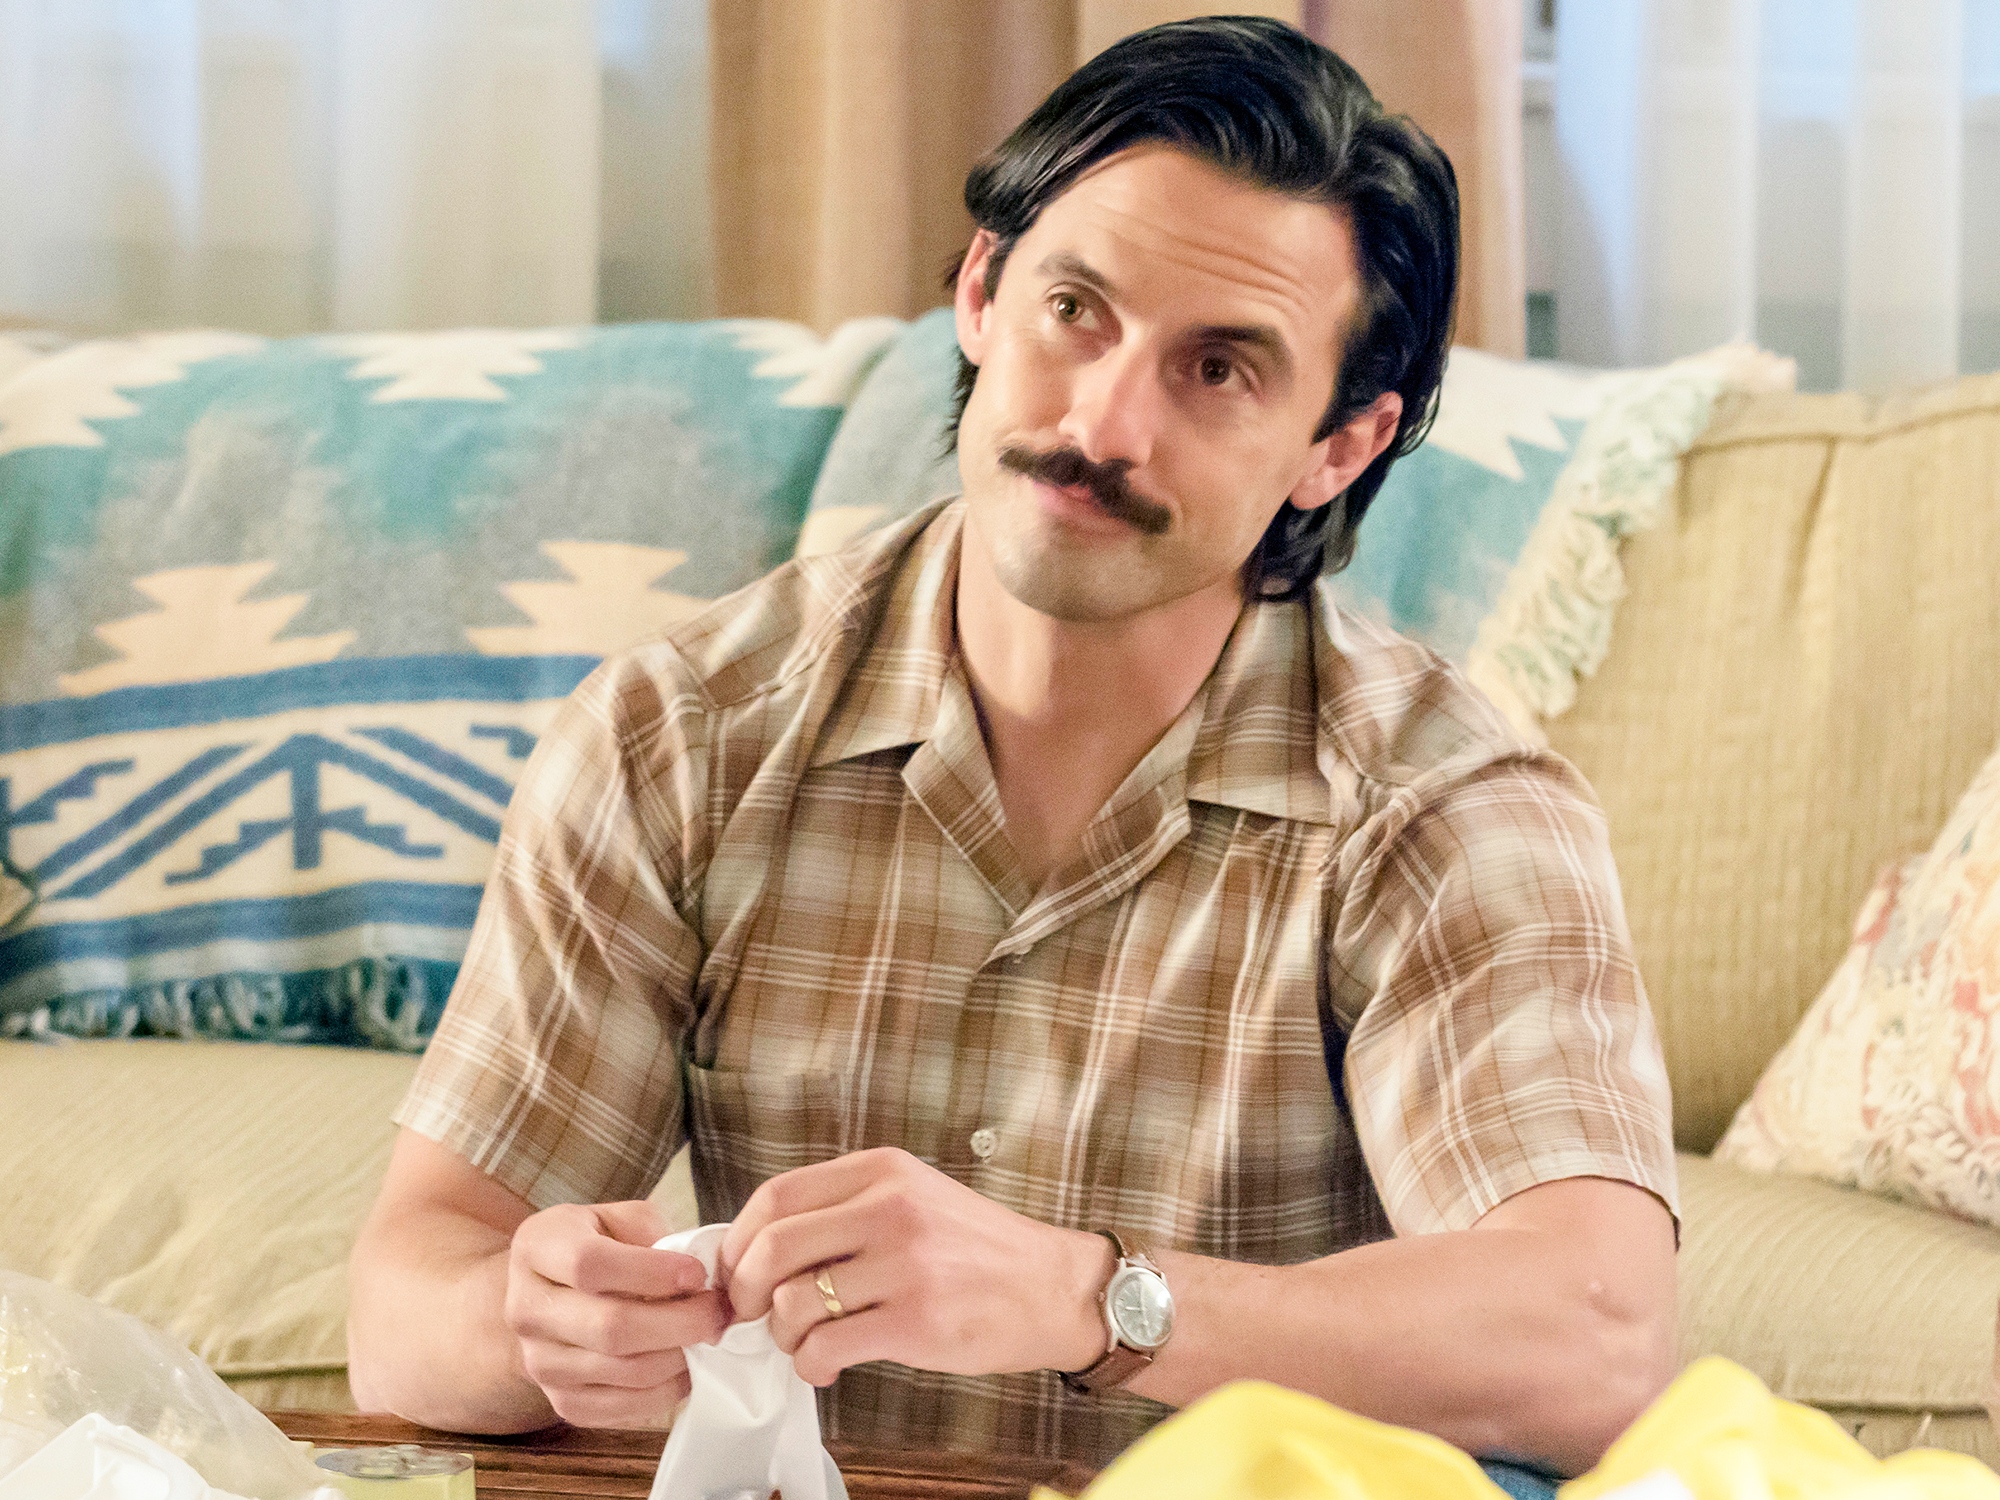 Milo Ventimiglia as Jack in This Is Us